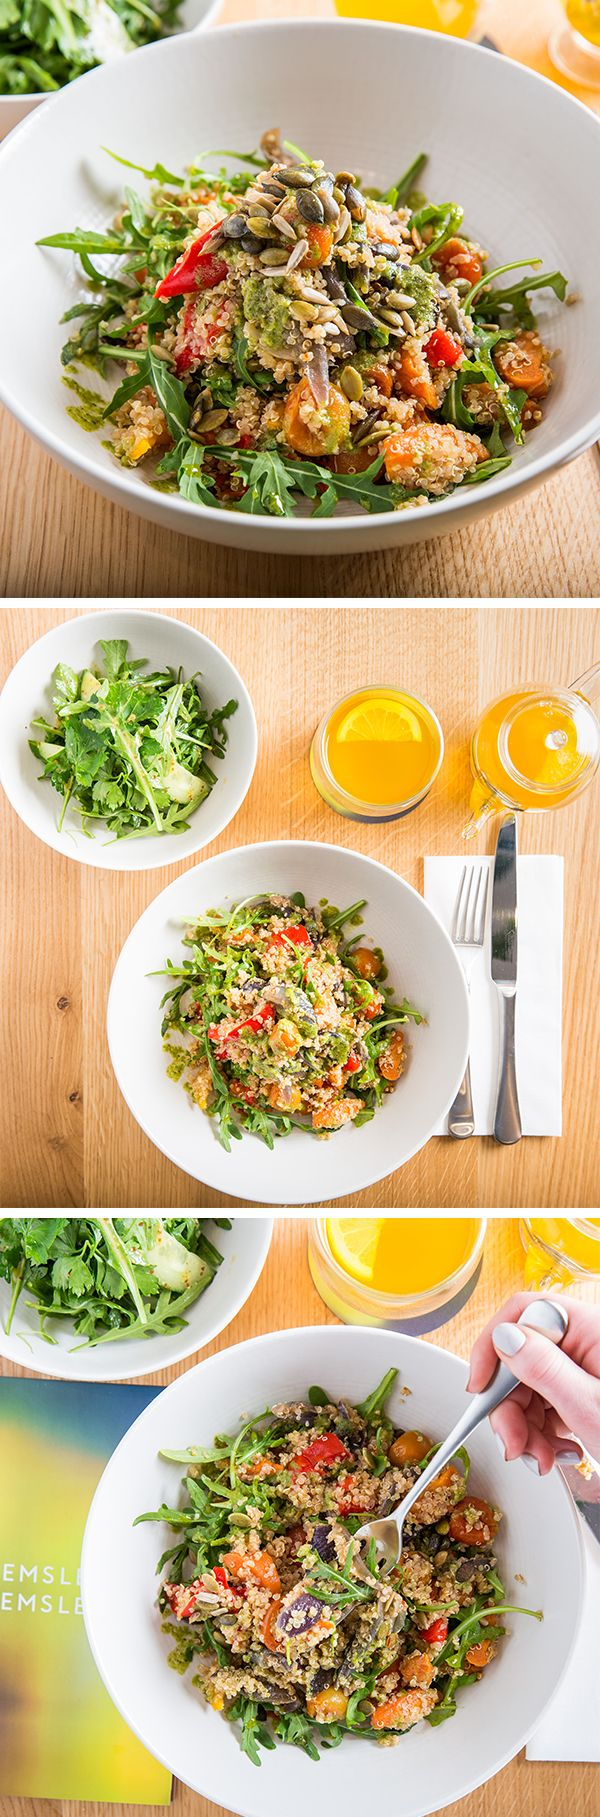 A spring time lunch at Hemsley + Hemsley at Selfridges looks like this: Our Quinoa Roasted Vegetable Salad with Basil Pesto, extra greens on the side and an invigorating Pep-Up Tea.